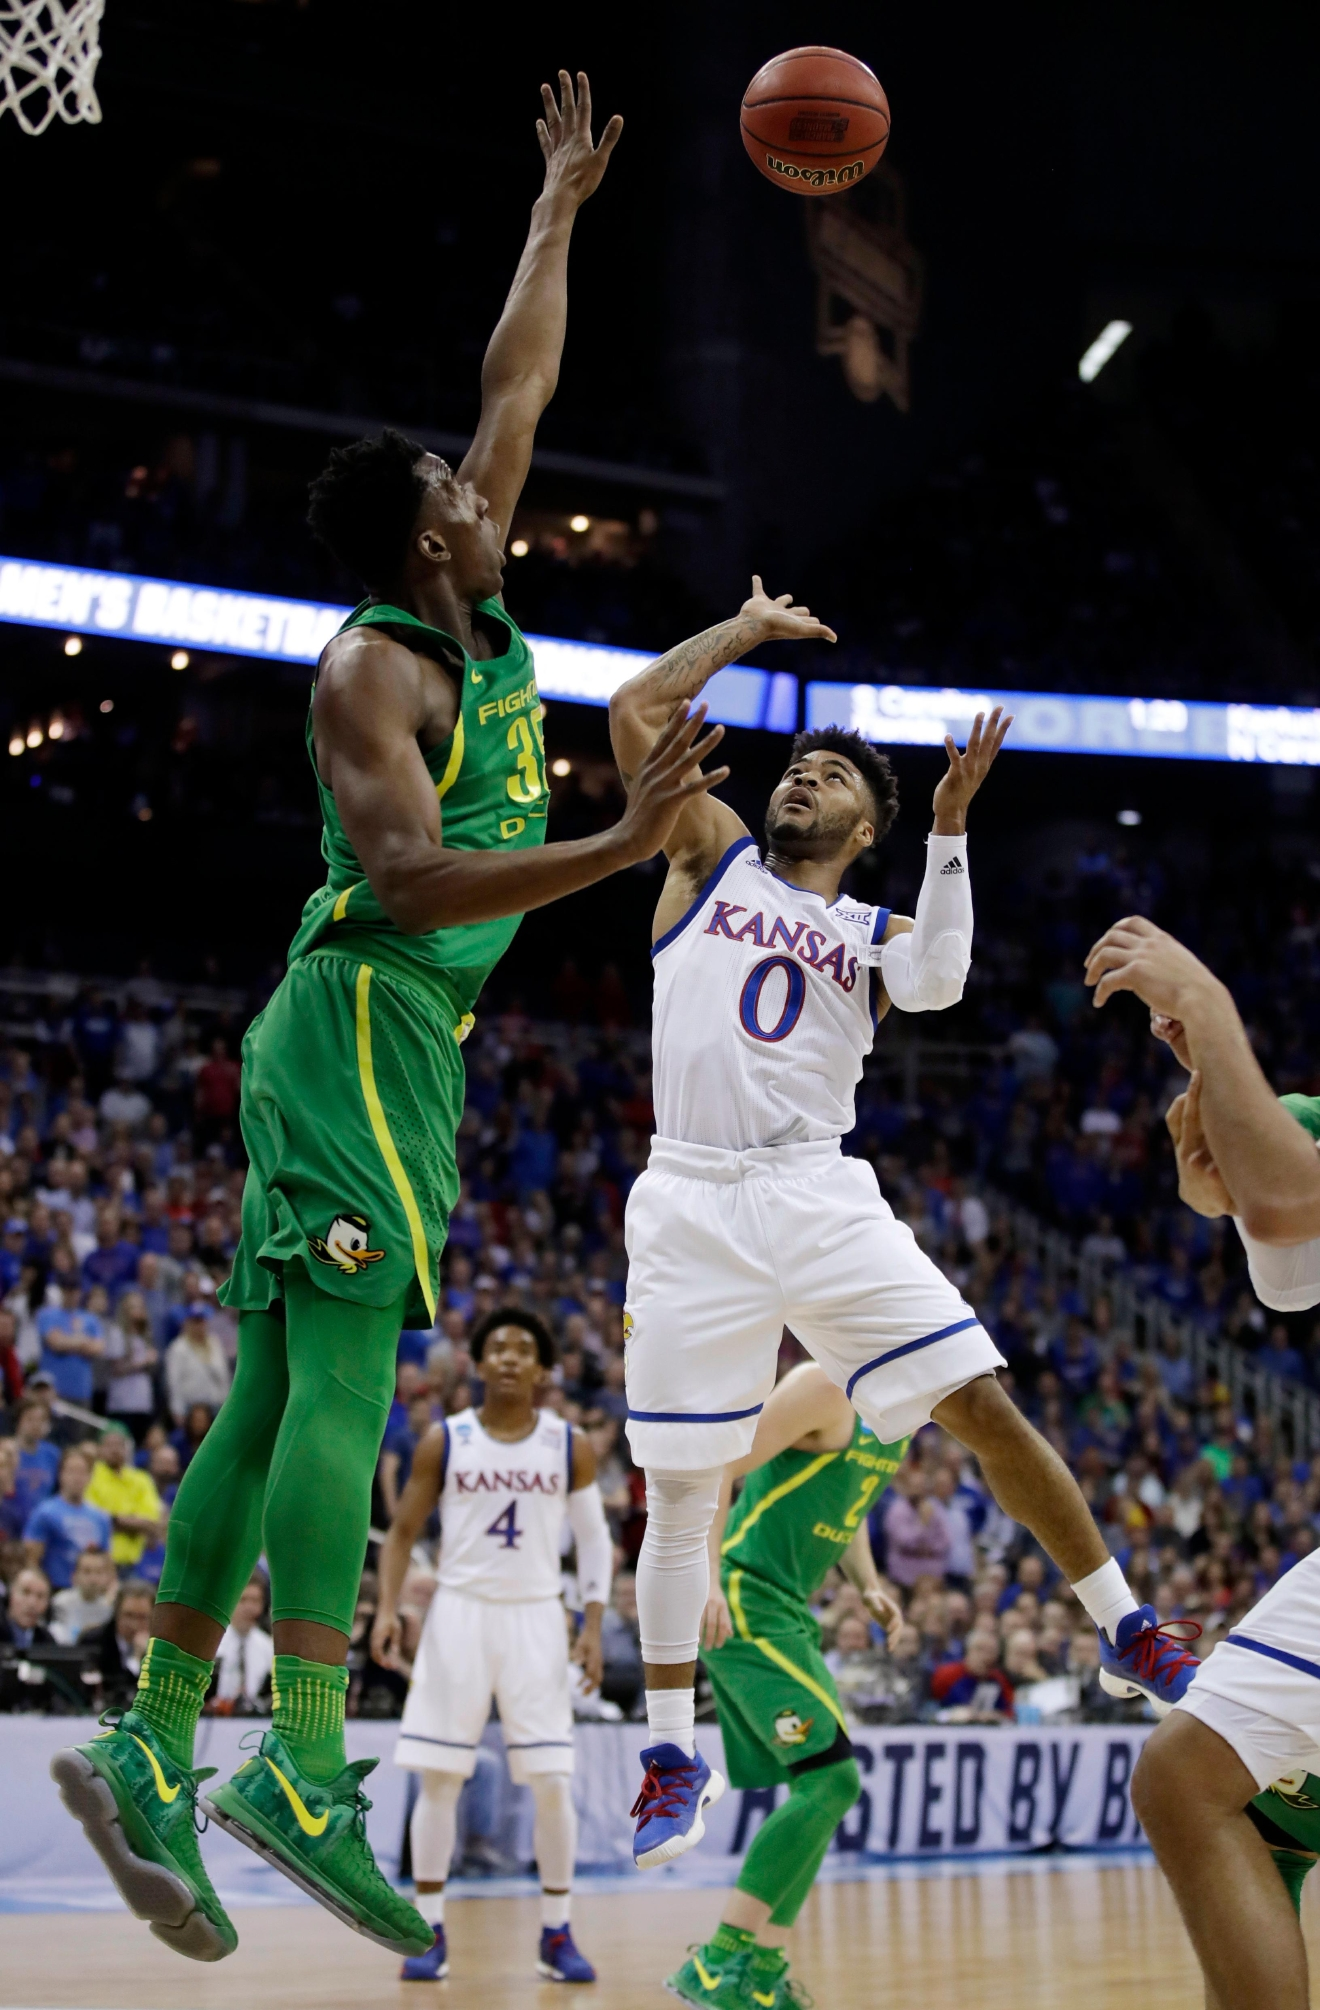 Kansas guard Frank Mason III (0) shoots over Oregon forward Kavell Bigby-Williams, left, during the first half of the Midwest Regional final of the NCAA men's college basketball tournament, Saturday, March 25, 2017, in Kansas City, Mo. (AP Photo/Charlie Riedel)